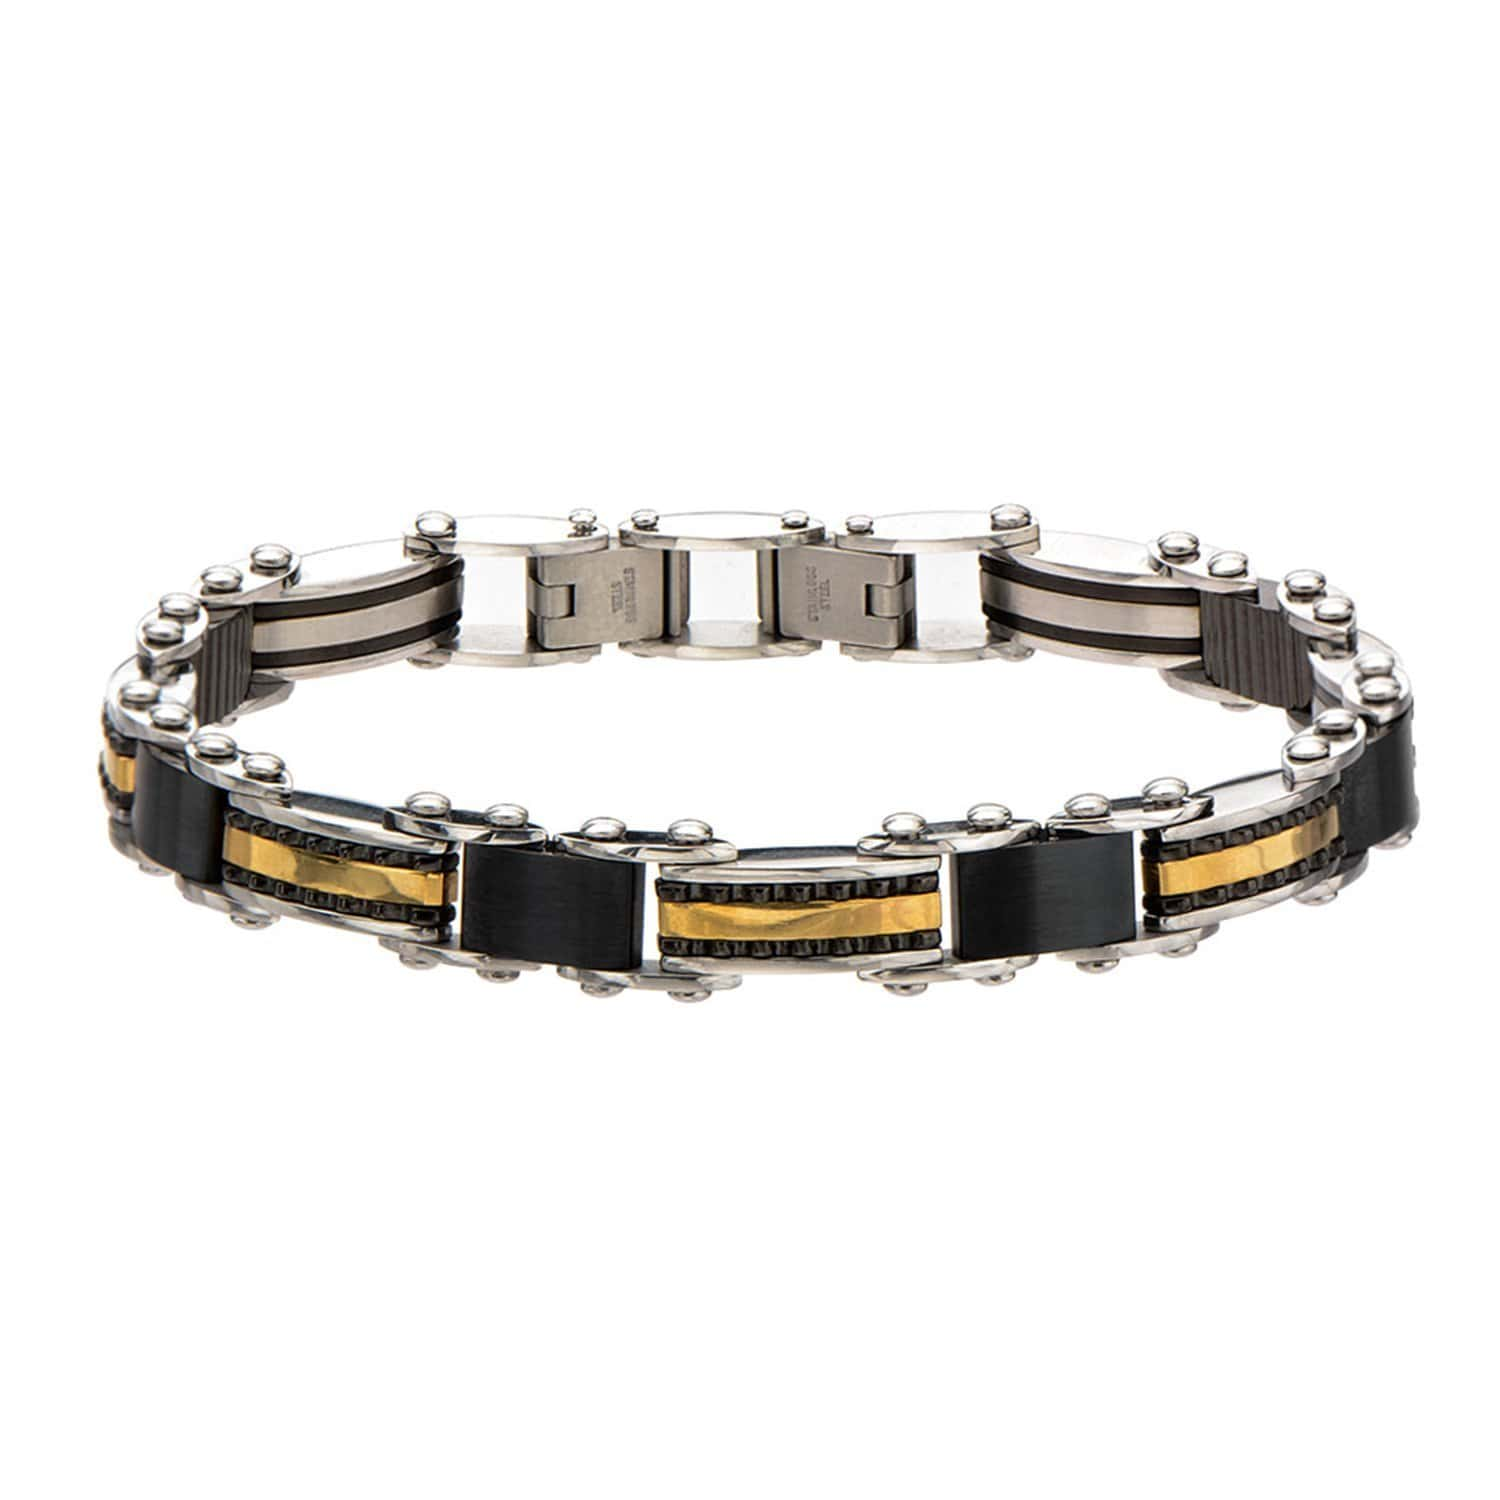 Gold, Black & Silver Stainless Steel Reversible Stripe/Bead Bracelet - Inox Jewelry India